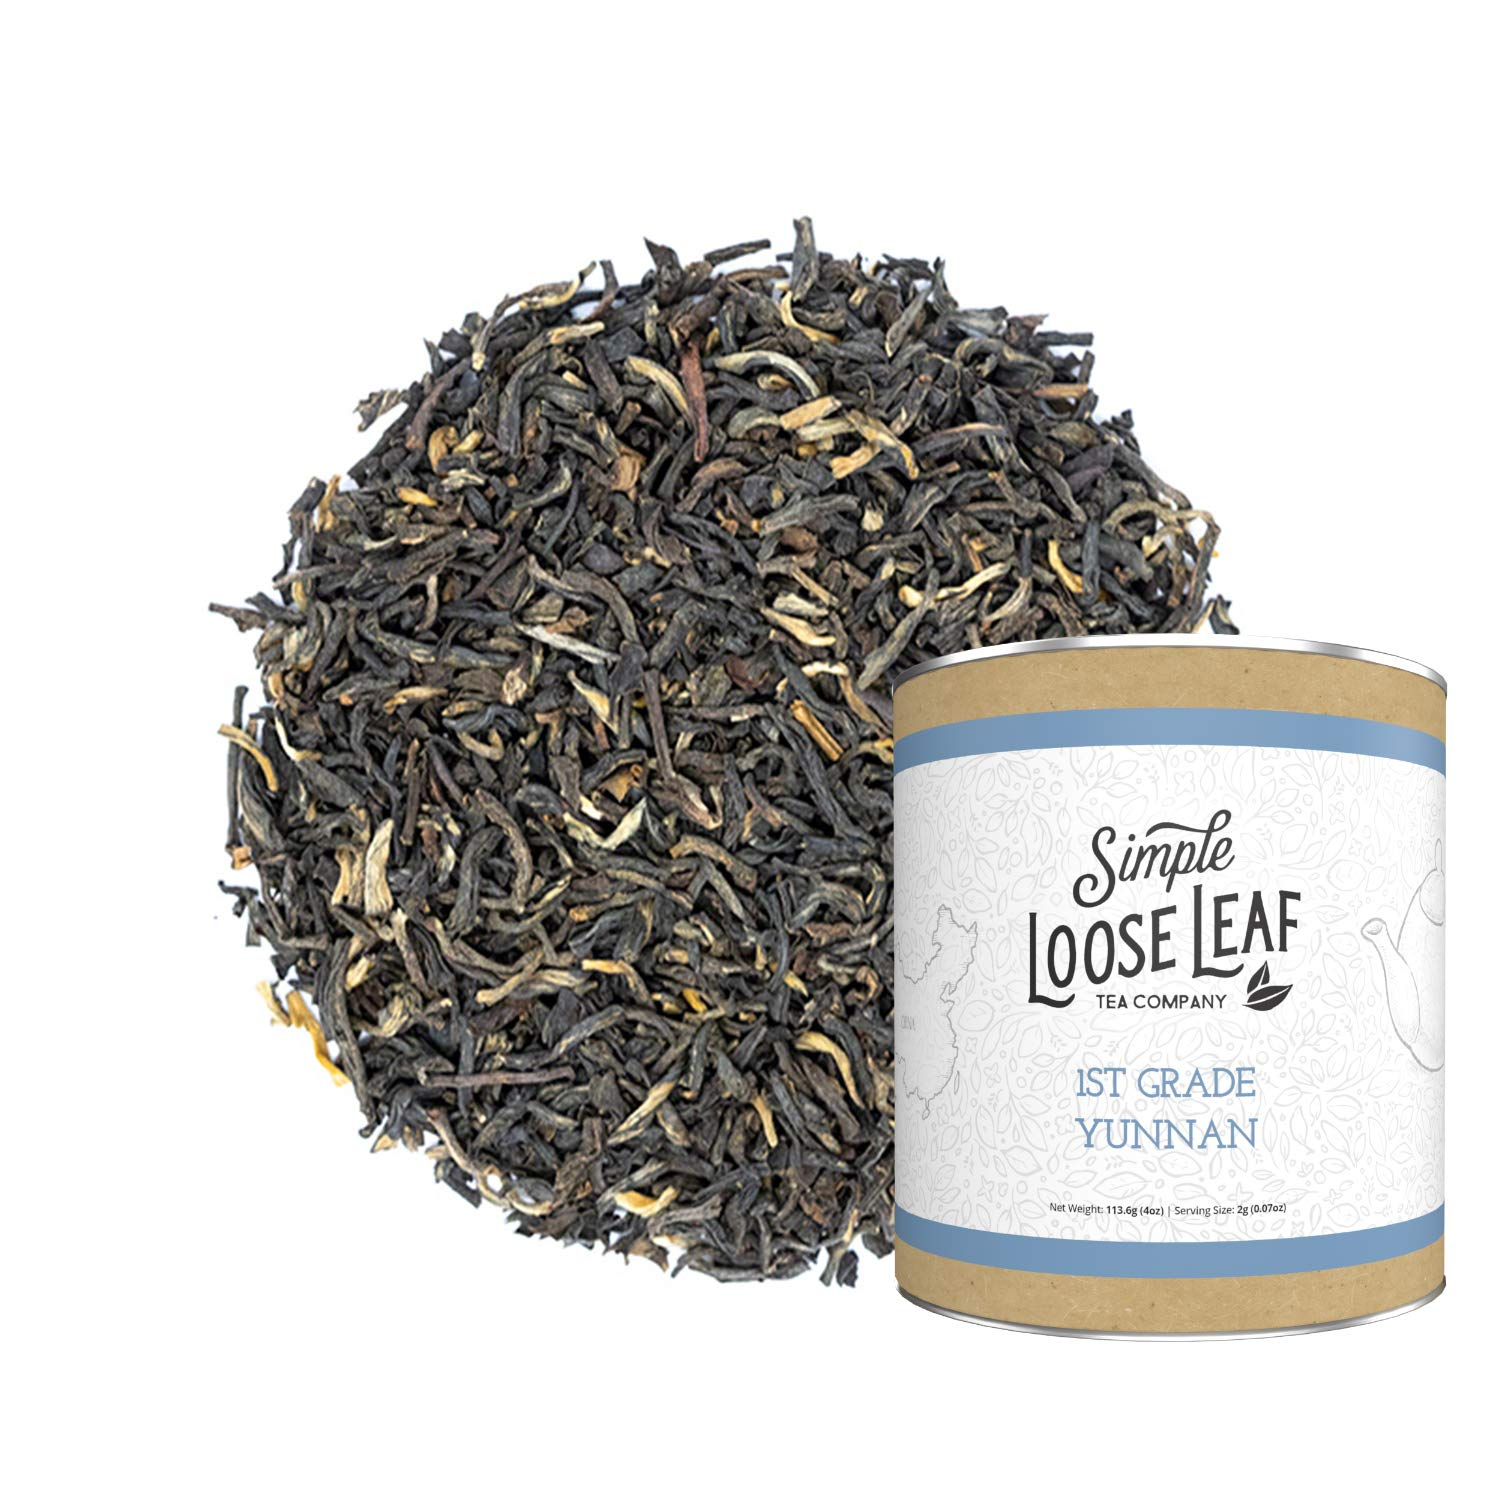 Simple Loose Leaf - 1st Grade Yunnan Black Tea - Premium Loose Leaf Black Tea (4 oz) - High Caffeine - Hearty and Rich - USA Hand Packaged - 60 Cups